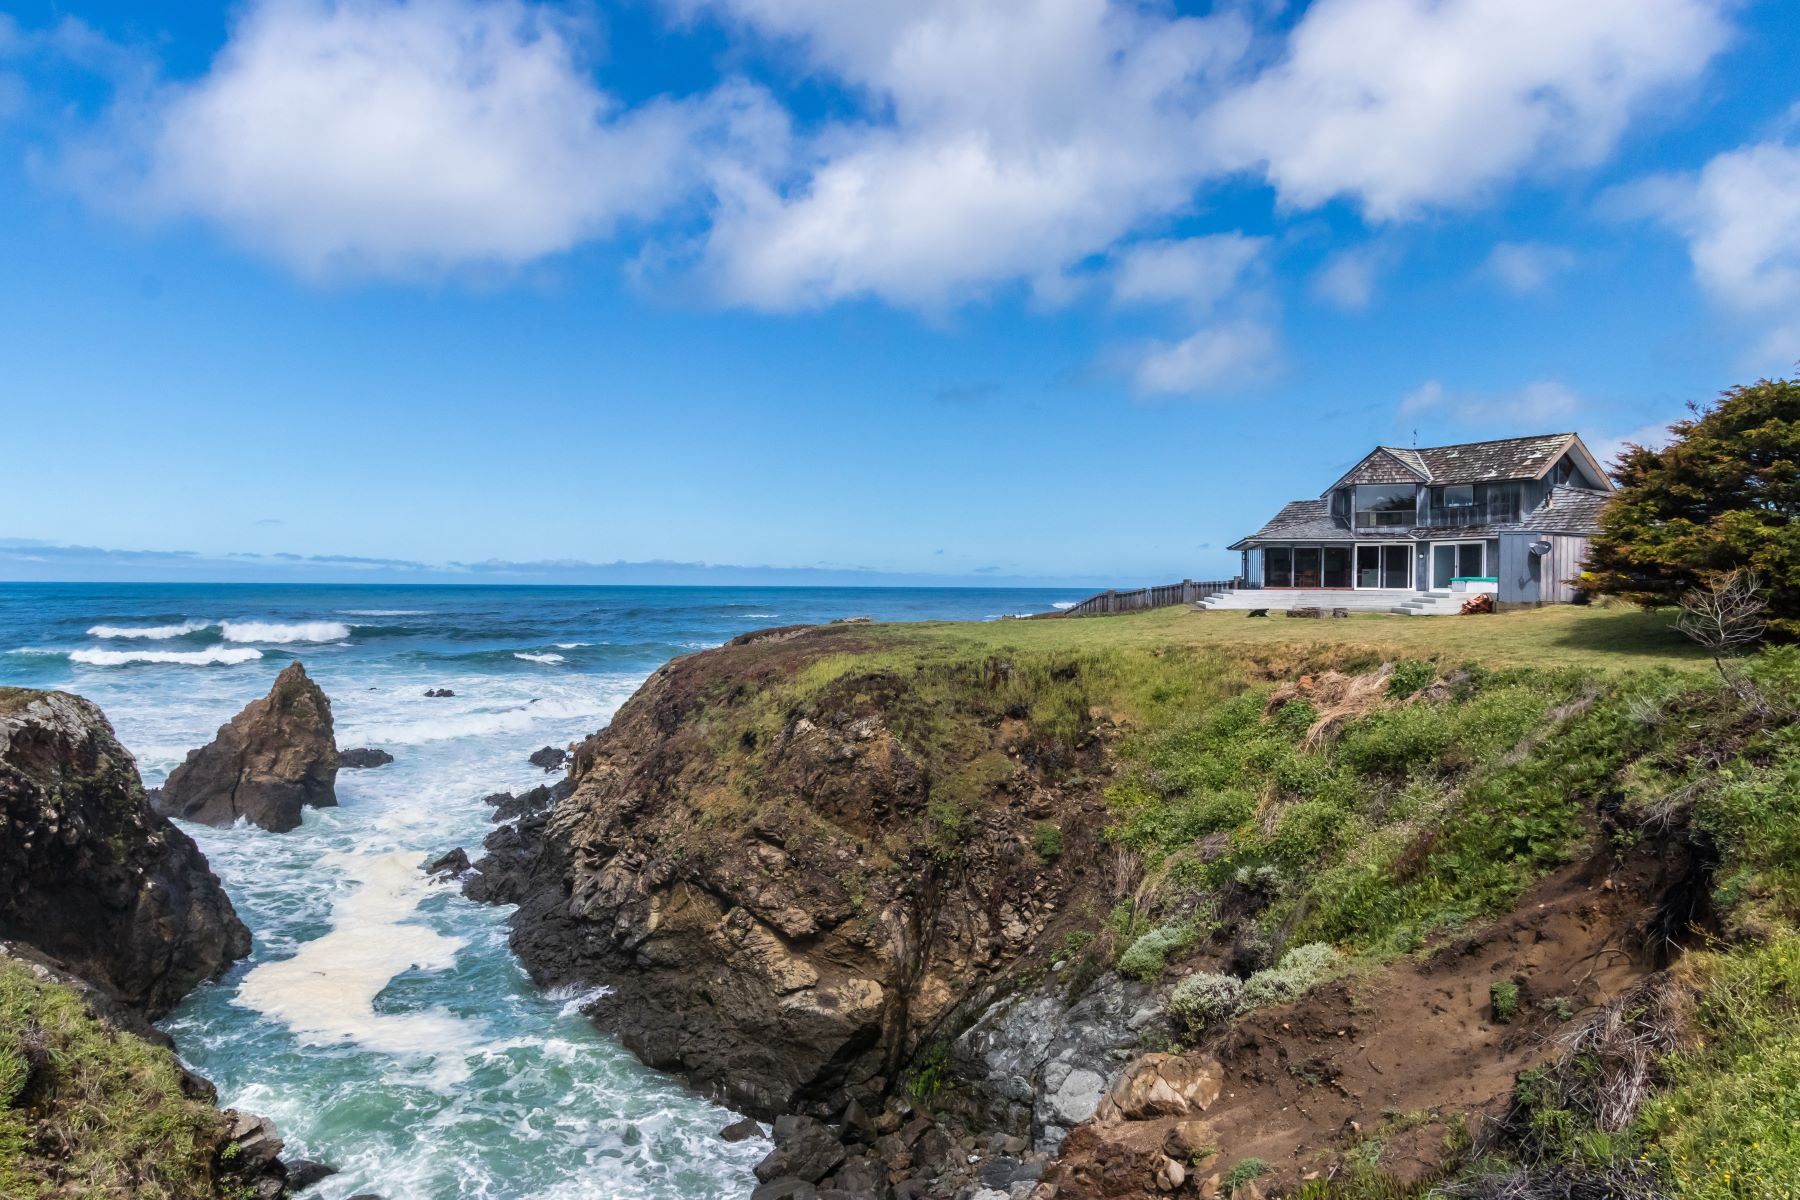 Single Family Homes for Sale at Seashine 31451 Bay View Ave Fort Bragg, California 95437 United States